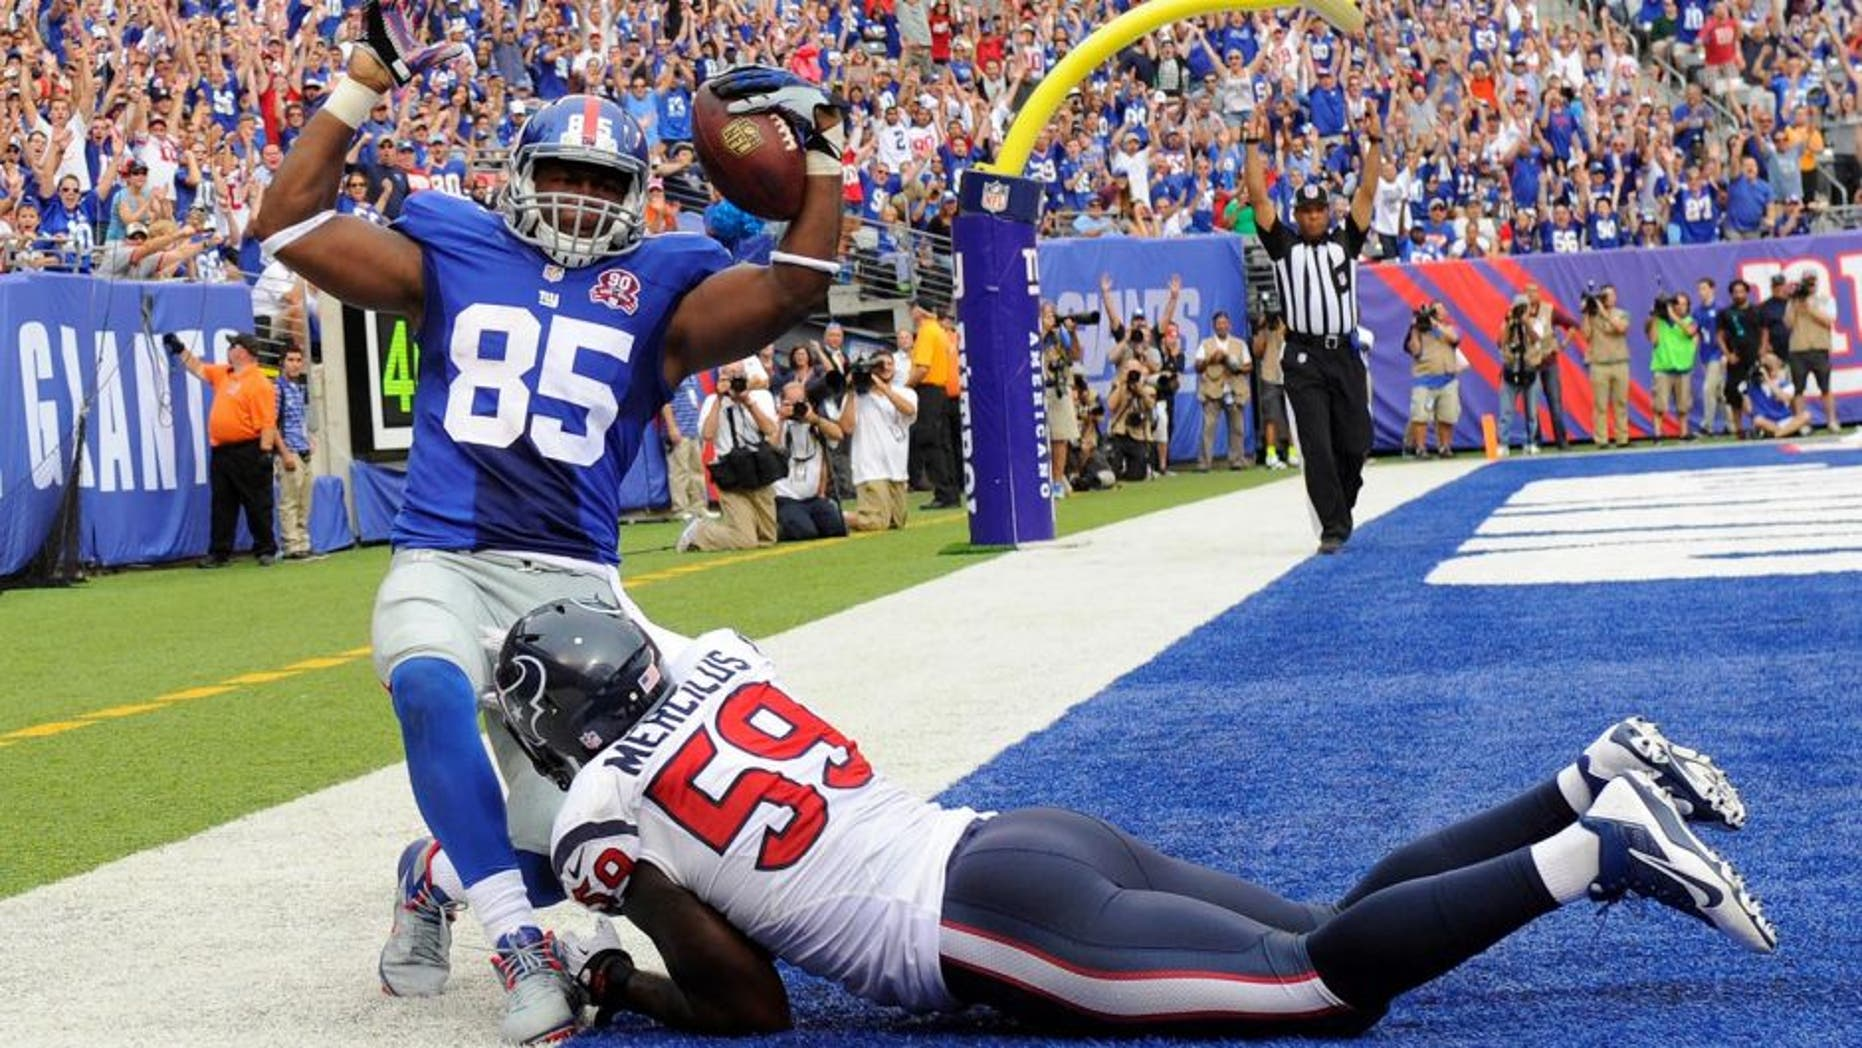 Sep 21, 2014; East Rutherford, NJ, USA; New York Giants tight end Daniel Fells (85) scores a touchdown against Houston Texans outside linebacker Whitney Mercilus (59) at MetLife Stadium. Mandatory Credit: Robert Deutsch-USA TODAY Sports